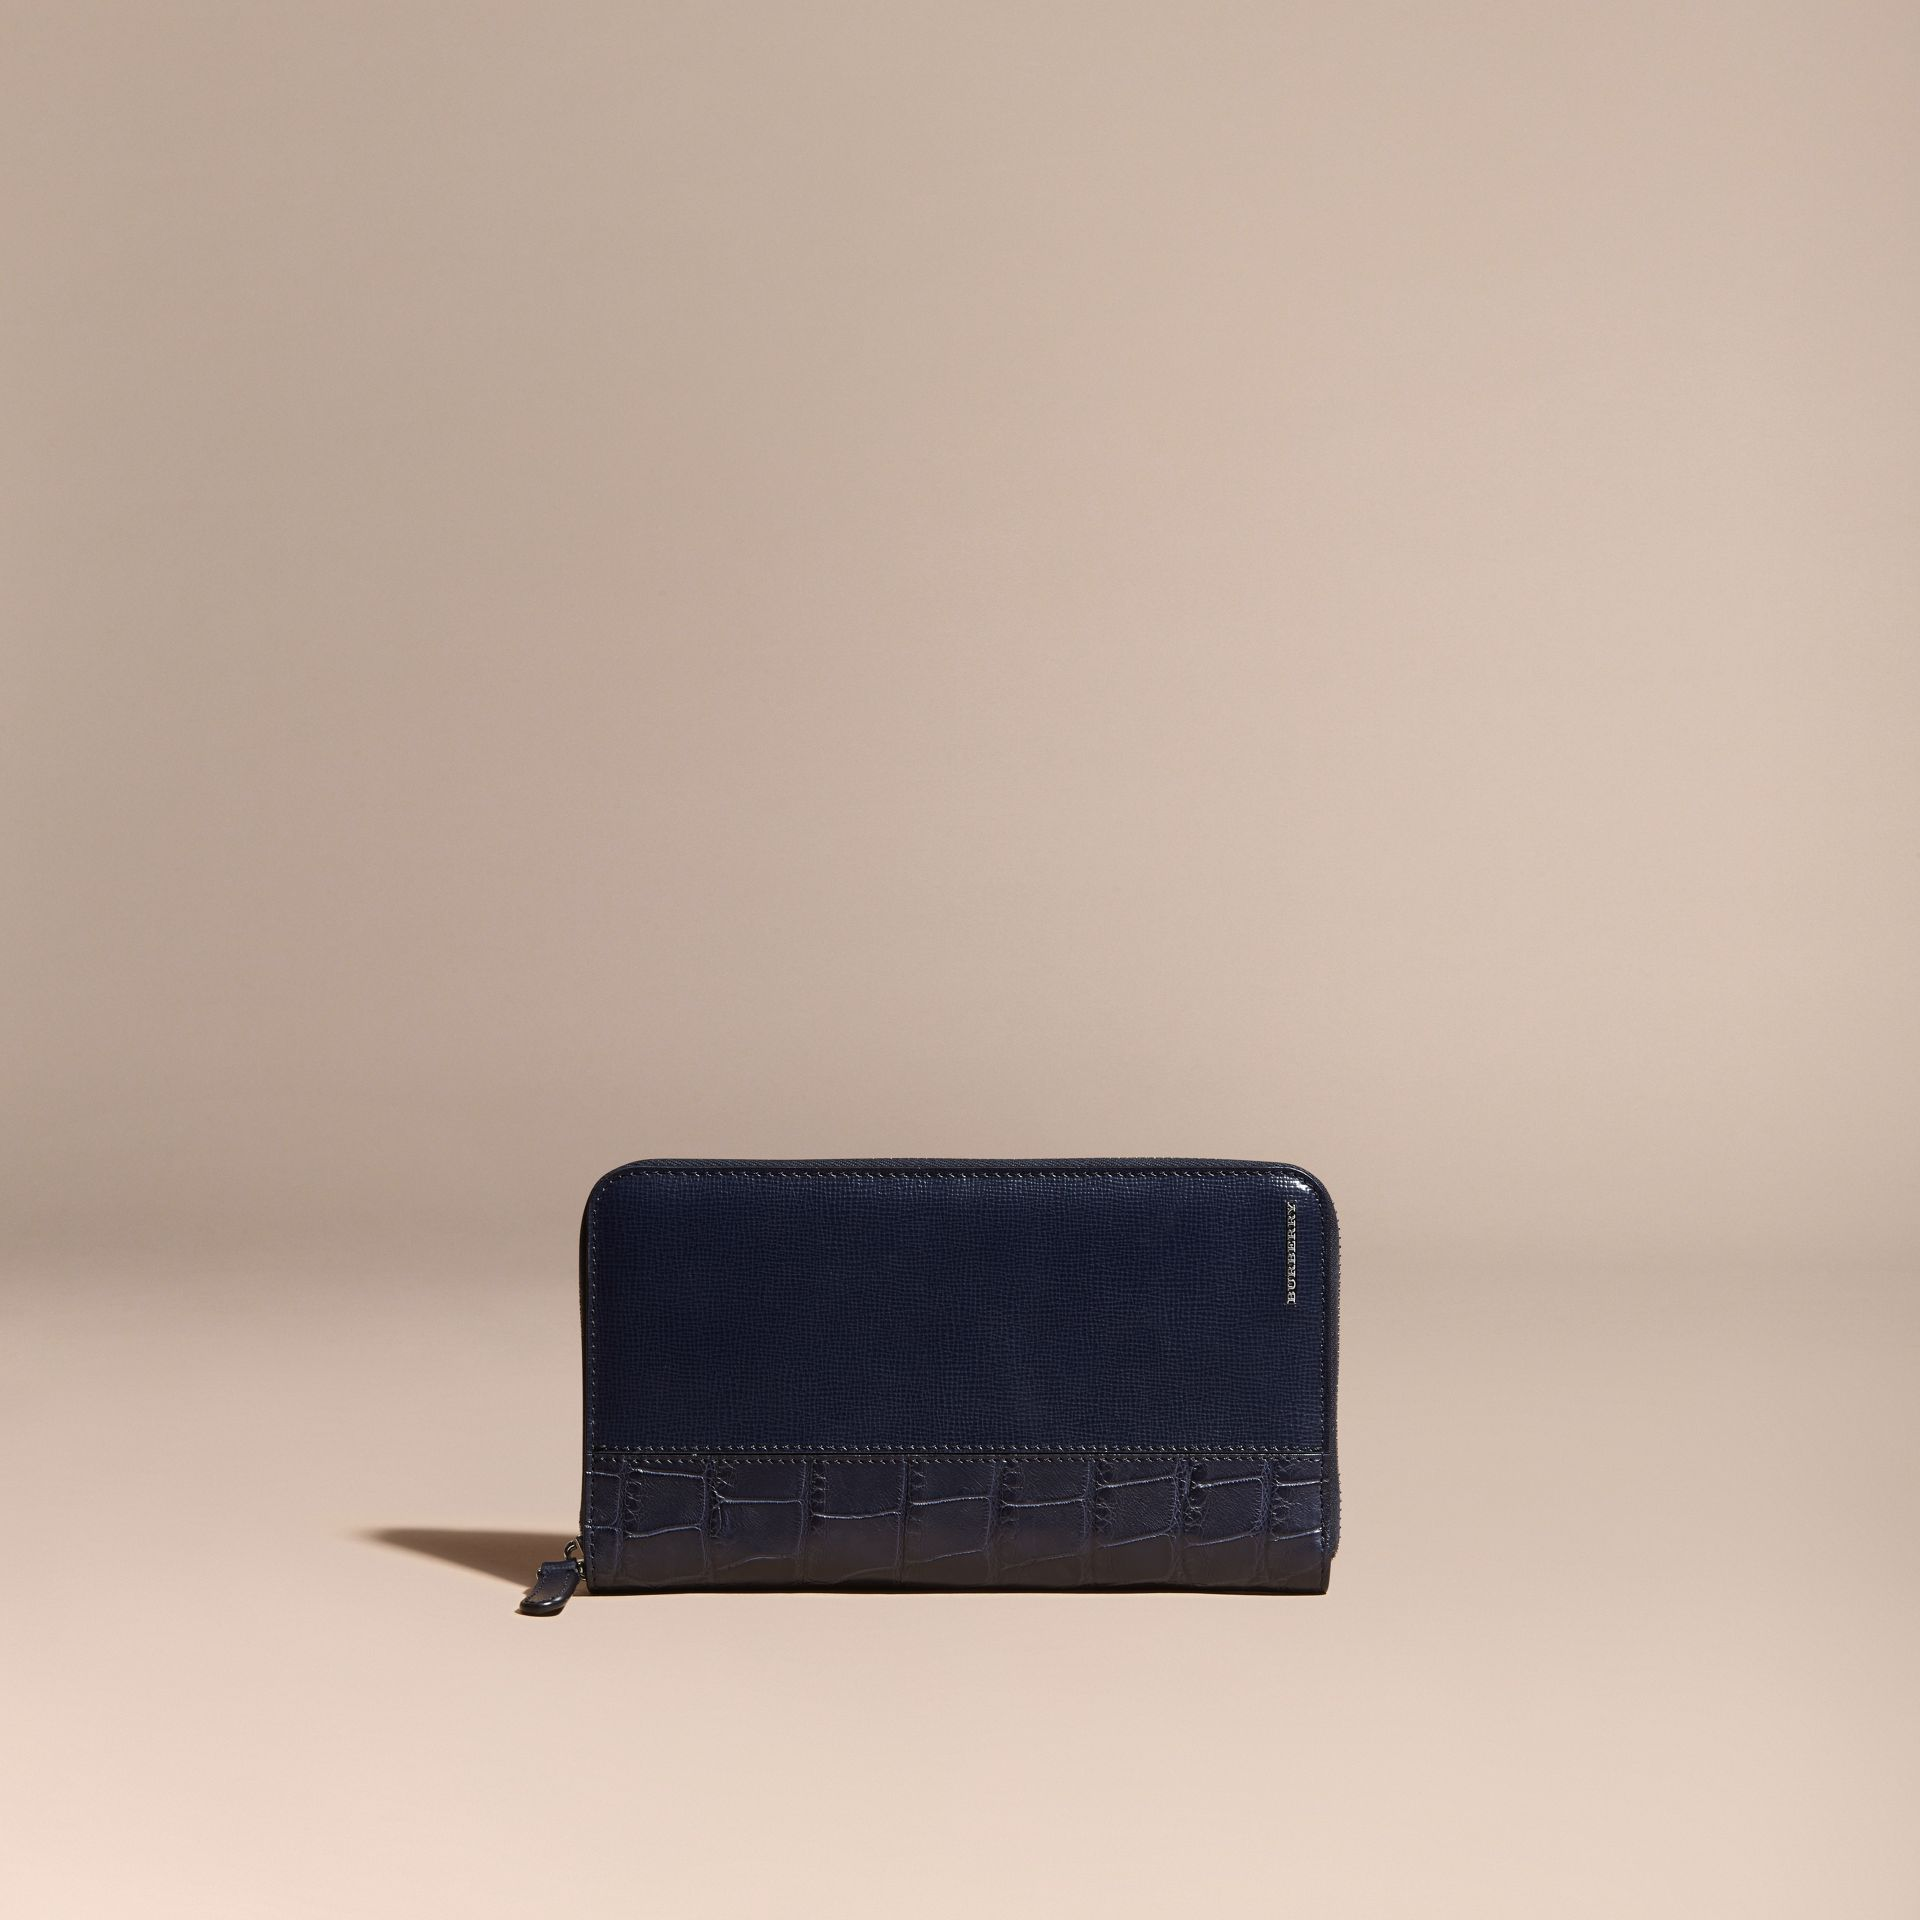 London Leather and Alligator Ziparound Wallet Dark Navy - gallery image 6